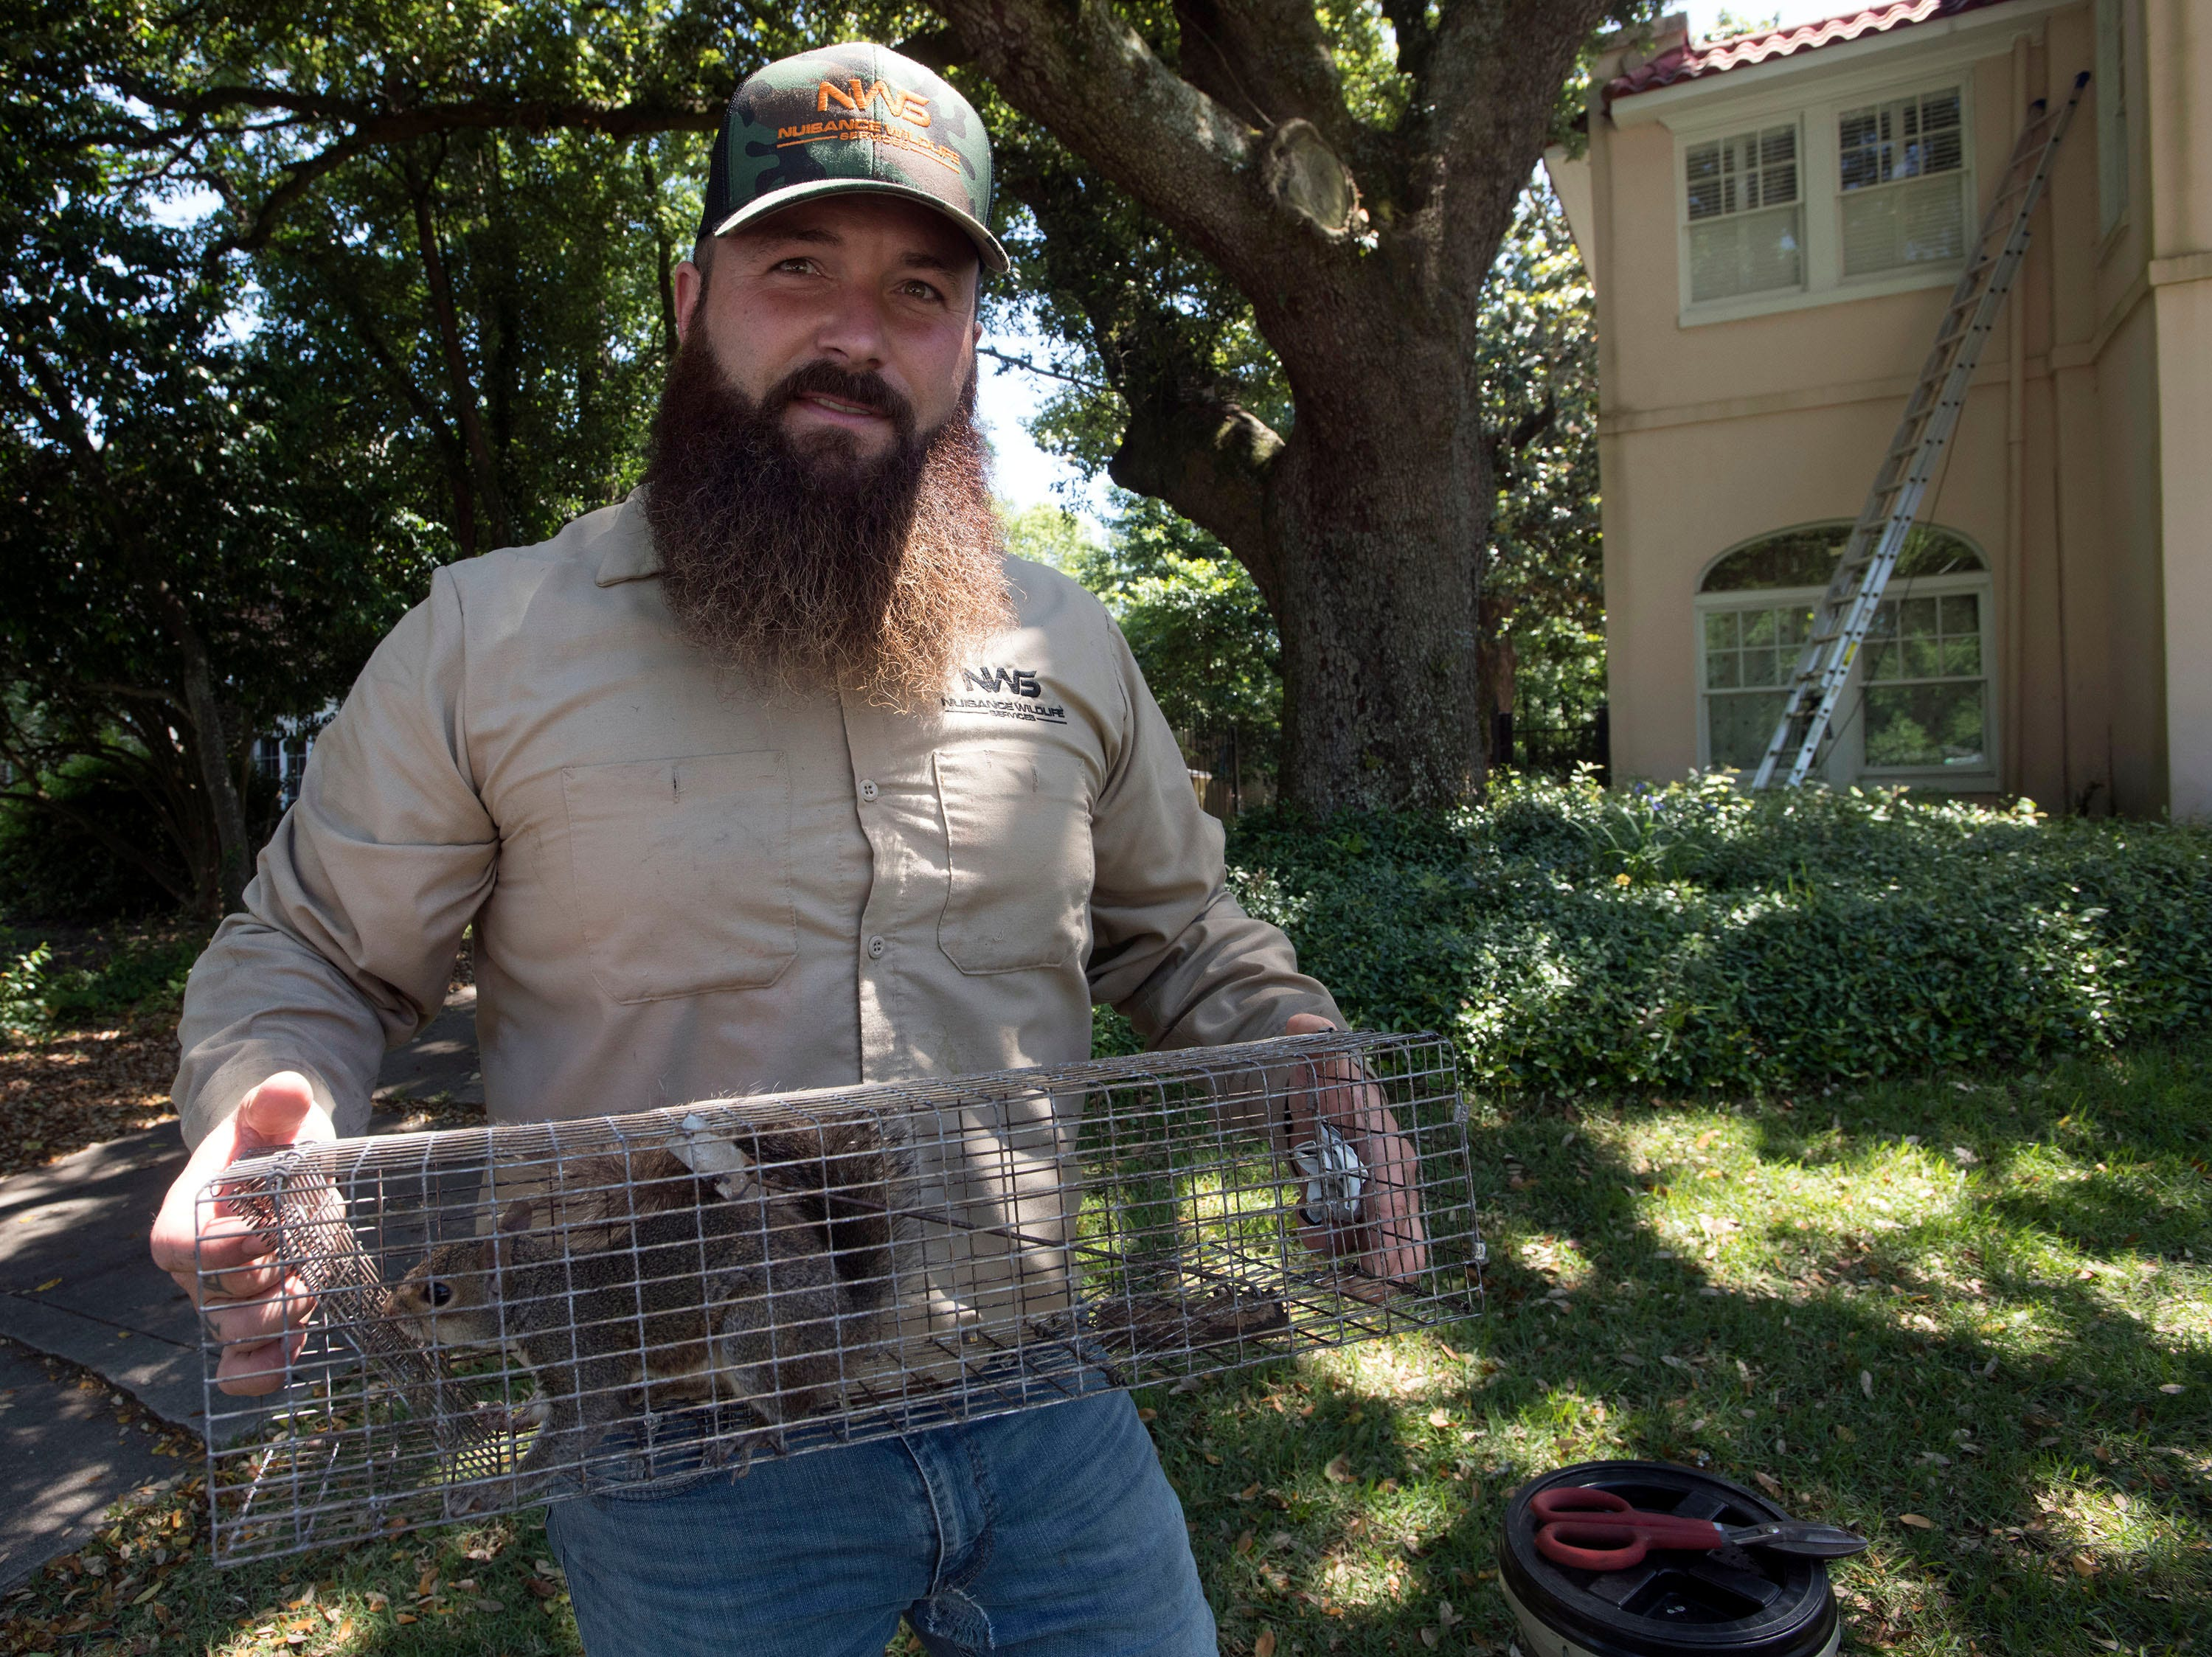 Dustin Niccum, the owner of Nuisance Wildlife Services, shows off a squirrel removed from a homeowner's property in North Hill on Wednesday, May 15, 2019. Niccum, a Hurricane Michael transplant, launched his humane wildlife removal company in the Pensacola area on April 1.